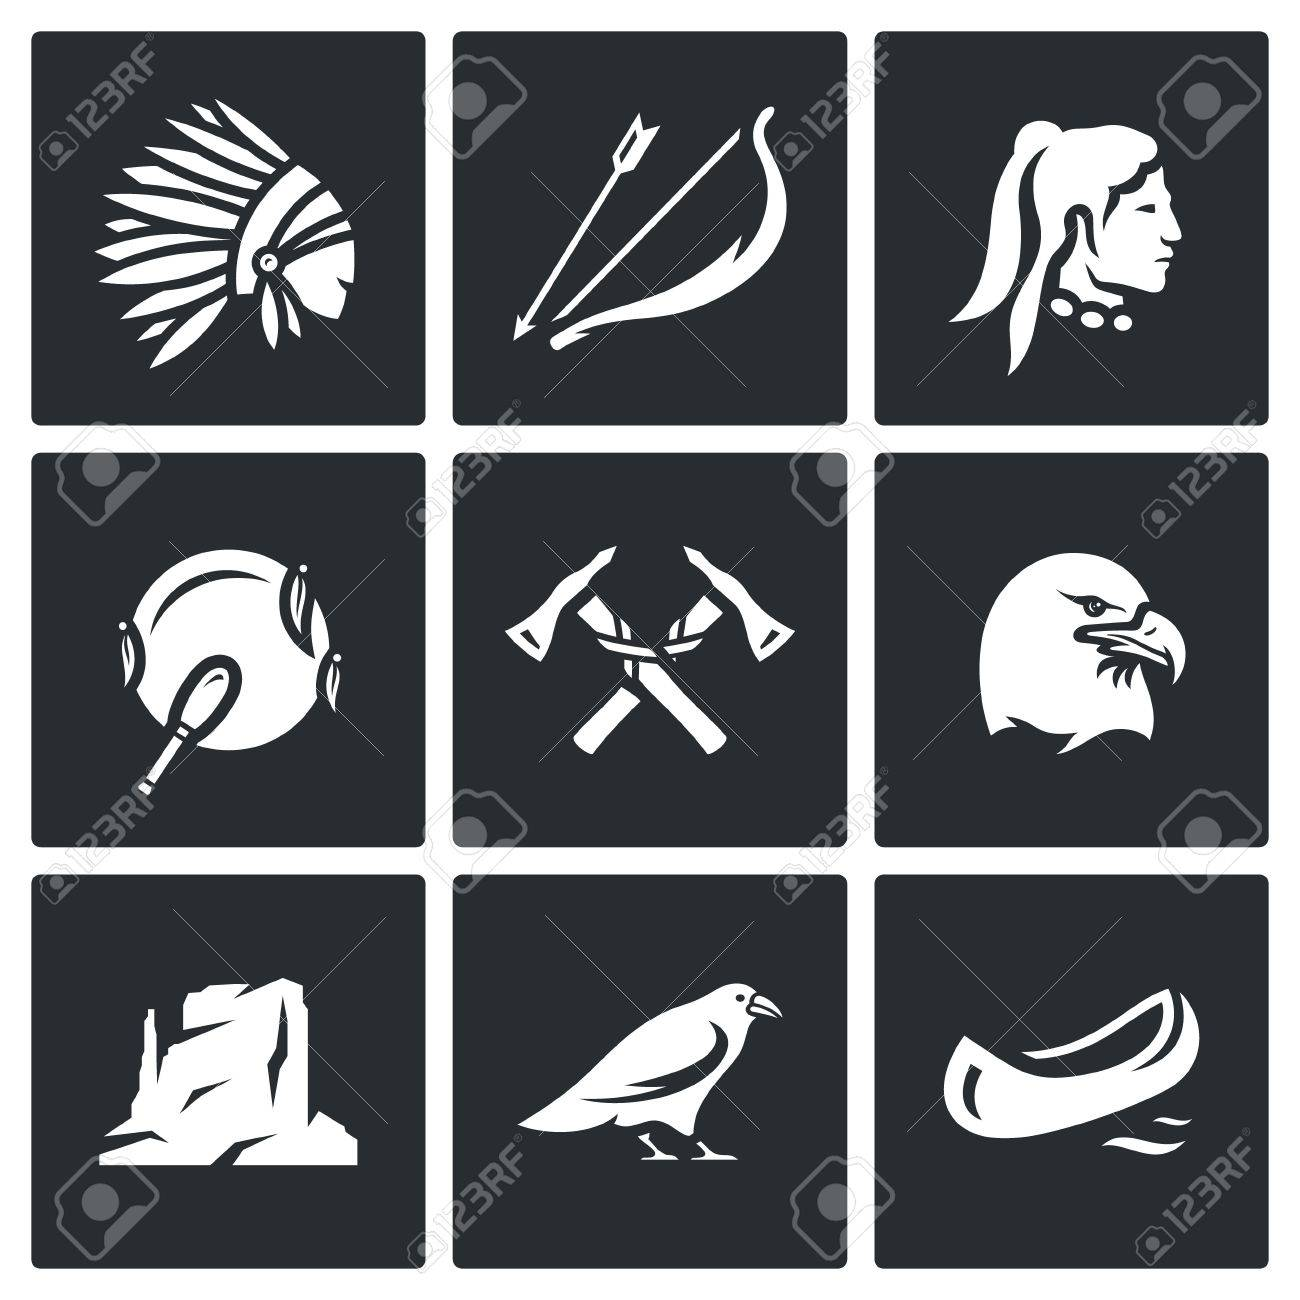 Indian Weapon Territory Animal Bird Symbols Collection Royalty